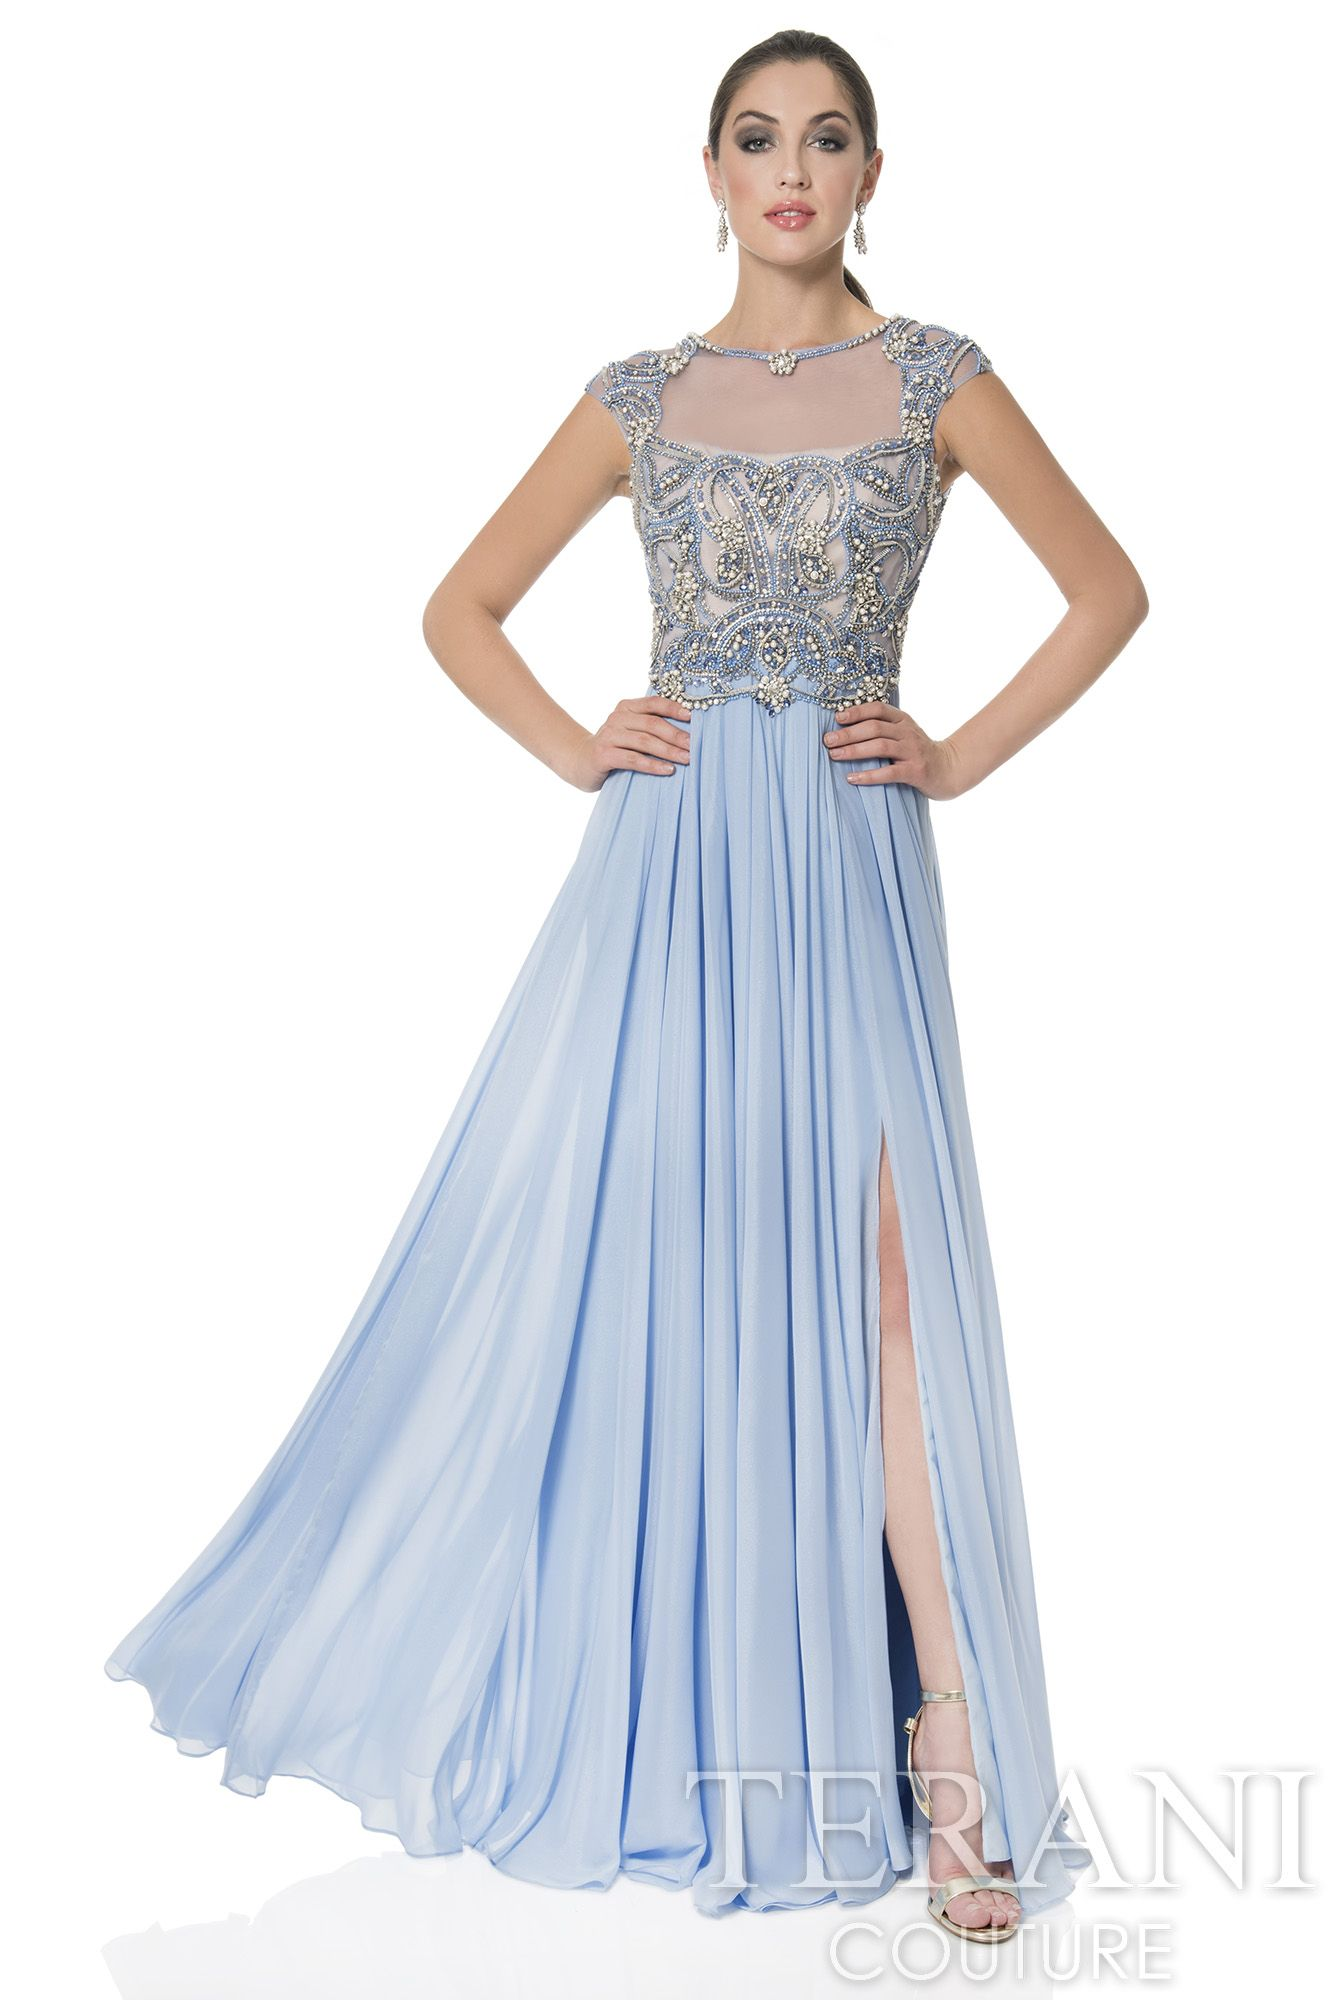 Terani Couture MoB Dresses 1613M0712 - USA Prom Dress http://bit.ly ...